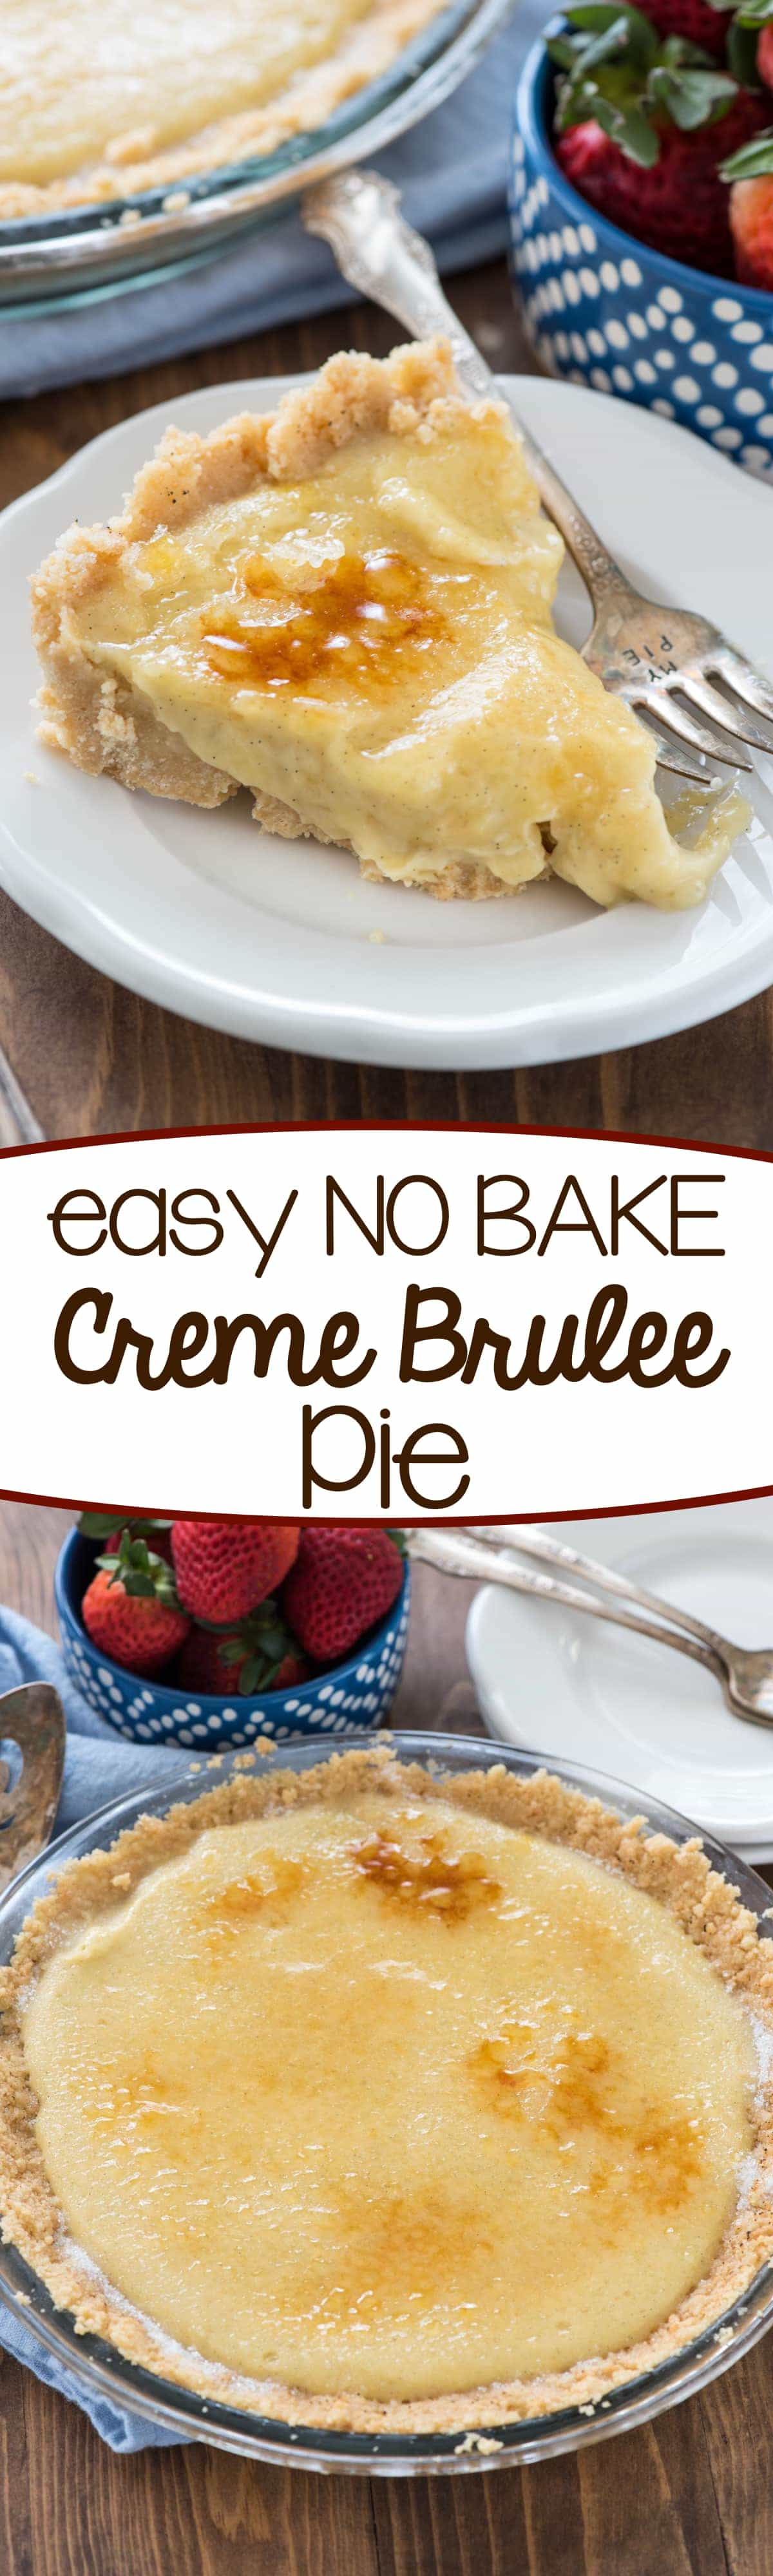 No Bake Creme Brulee Pie - Crazy for Crust